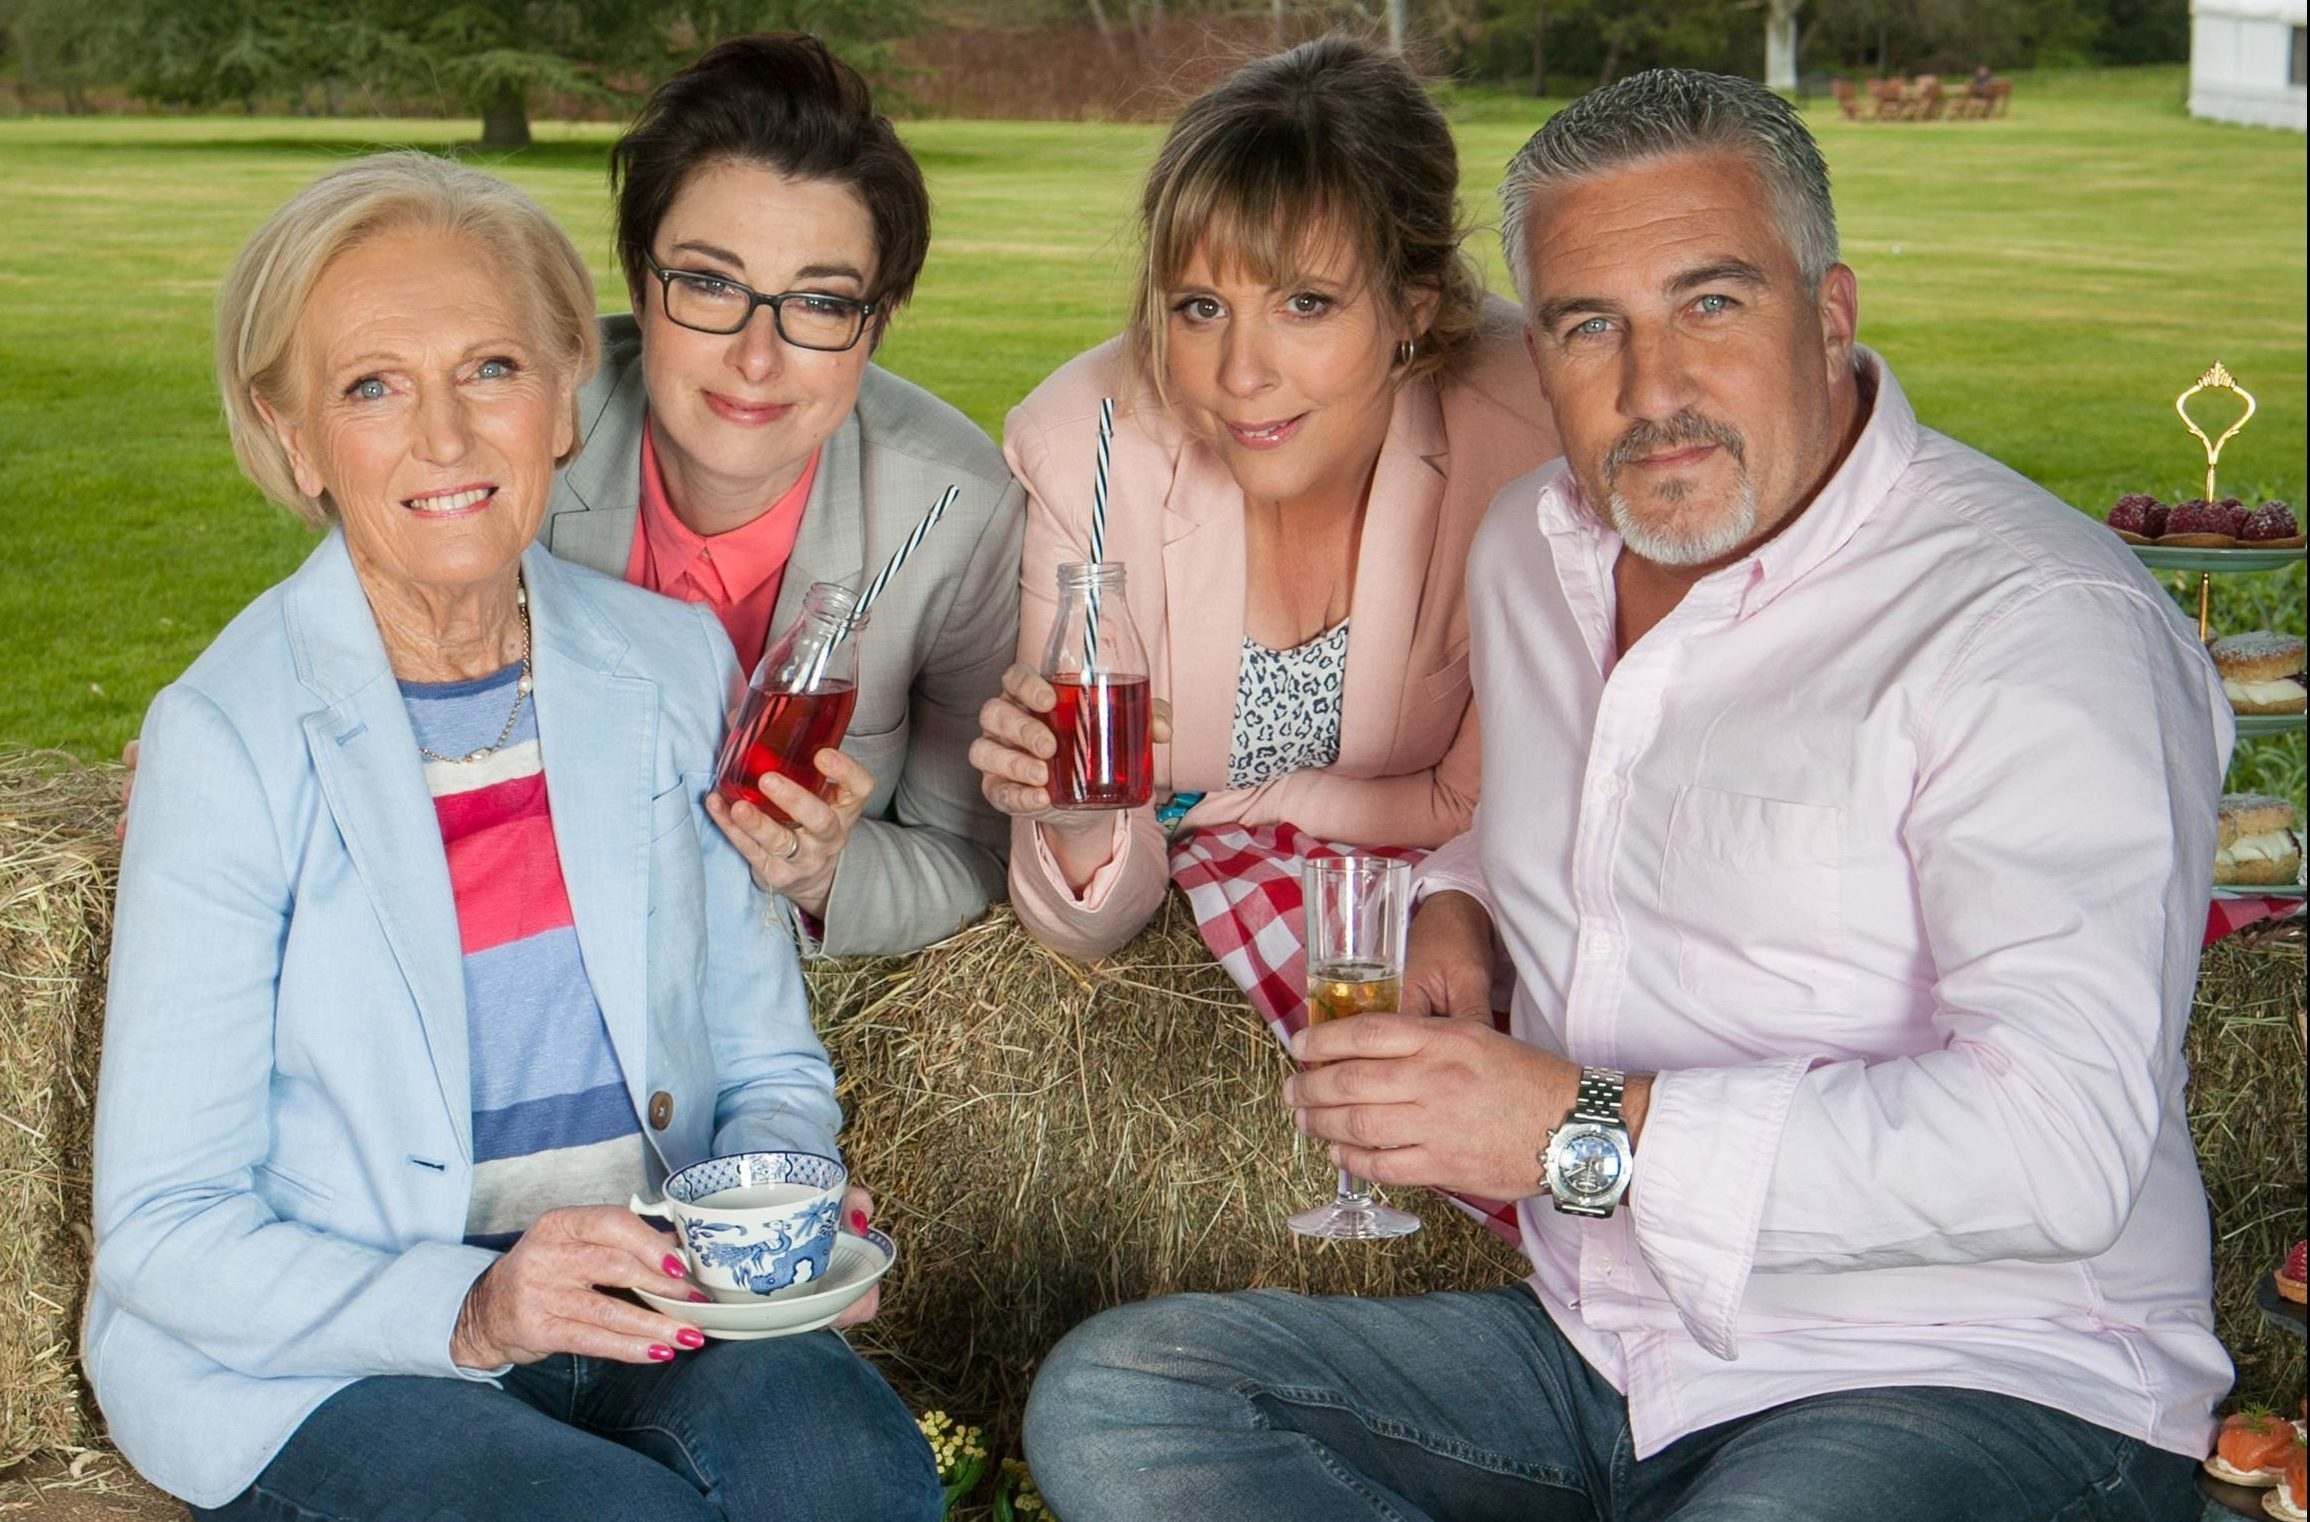 The presenters of The Great British Bake-Off have yet to confirm whether they will move to Channel 4.